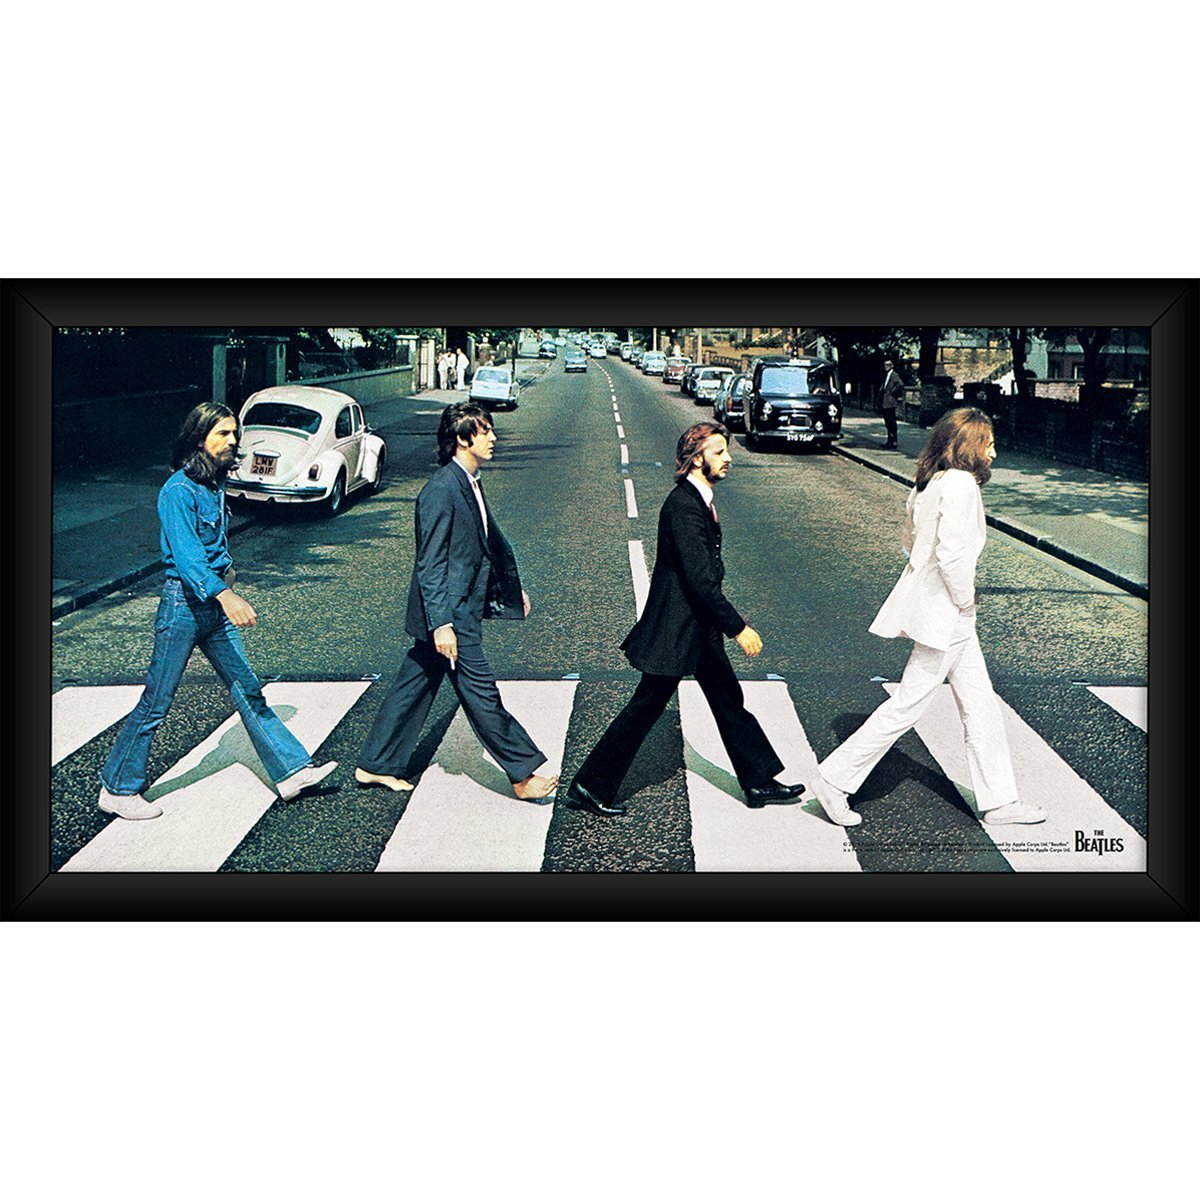 The Beatles Abbey Road 10x20 Framed Collage Steiner Sports